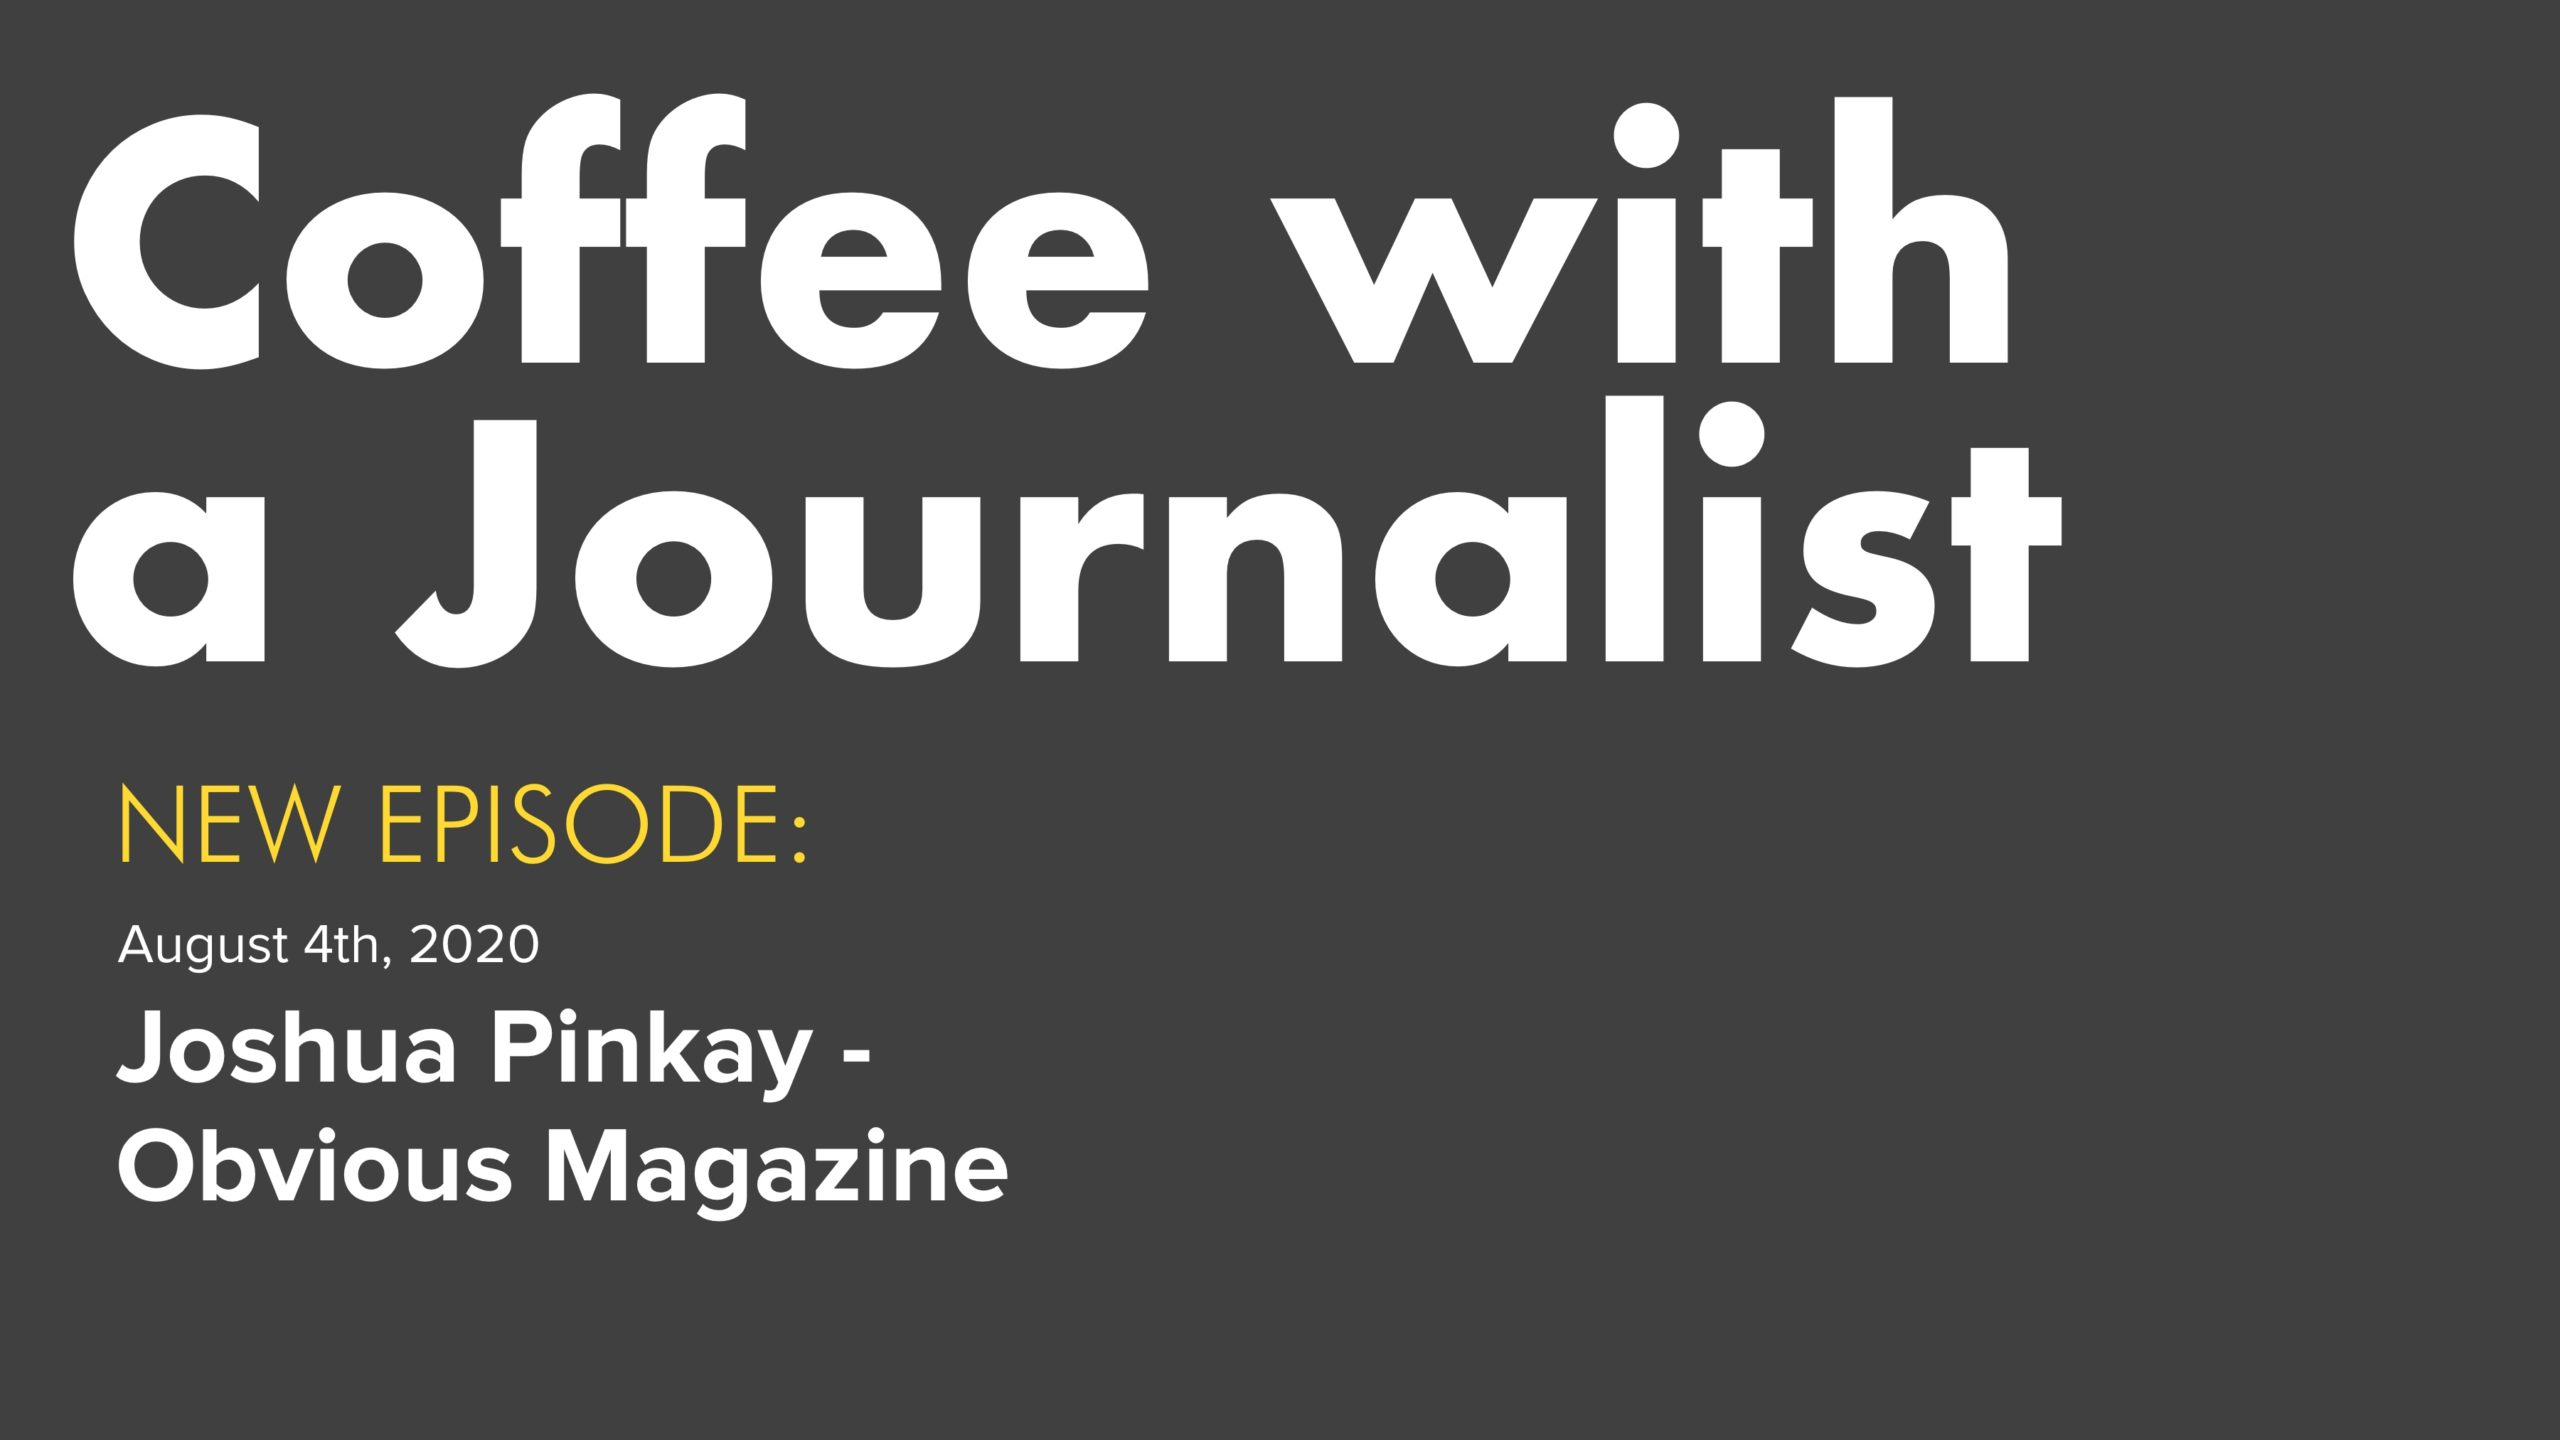 Coffee With A Journalist - Joshua Pinkay, Obvious Magazine